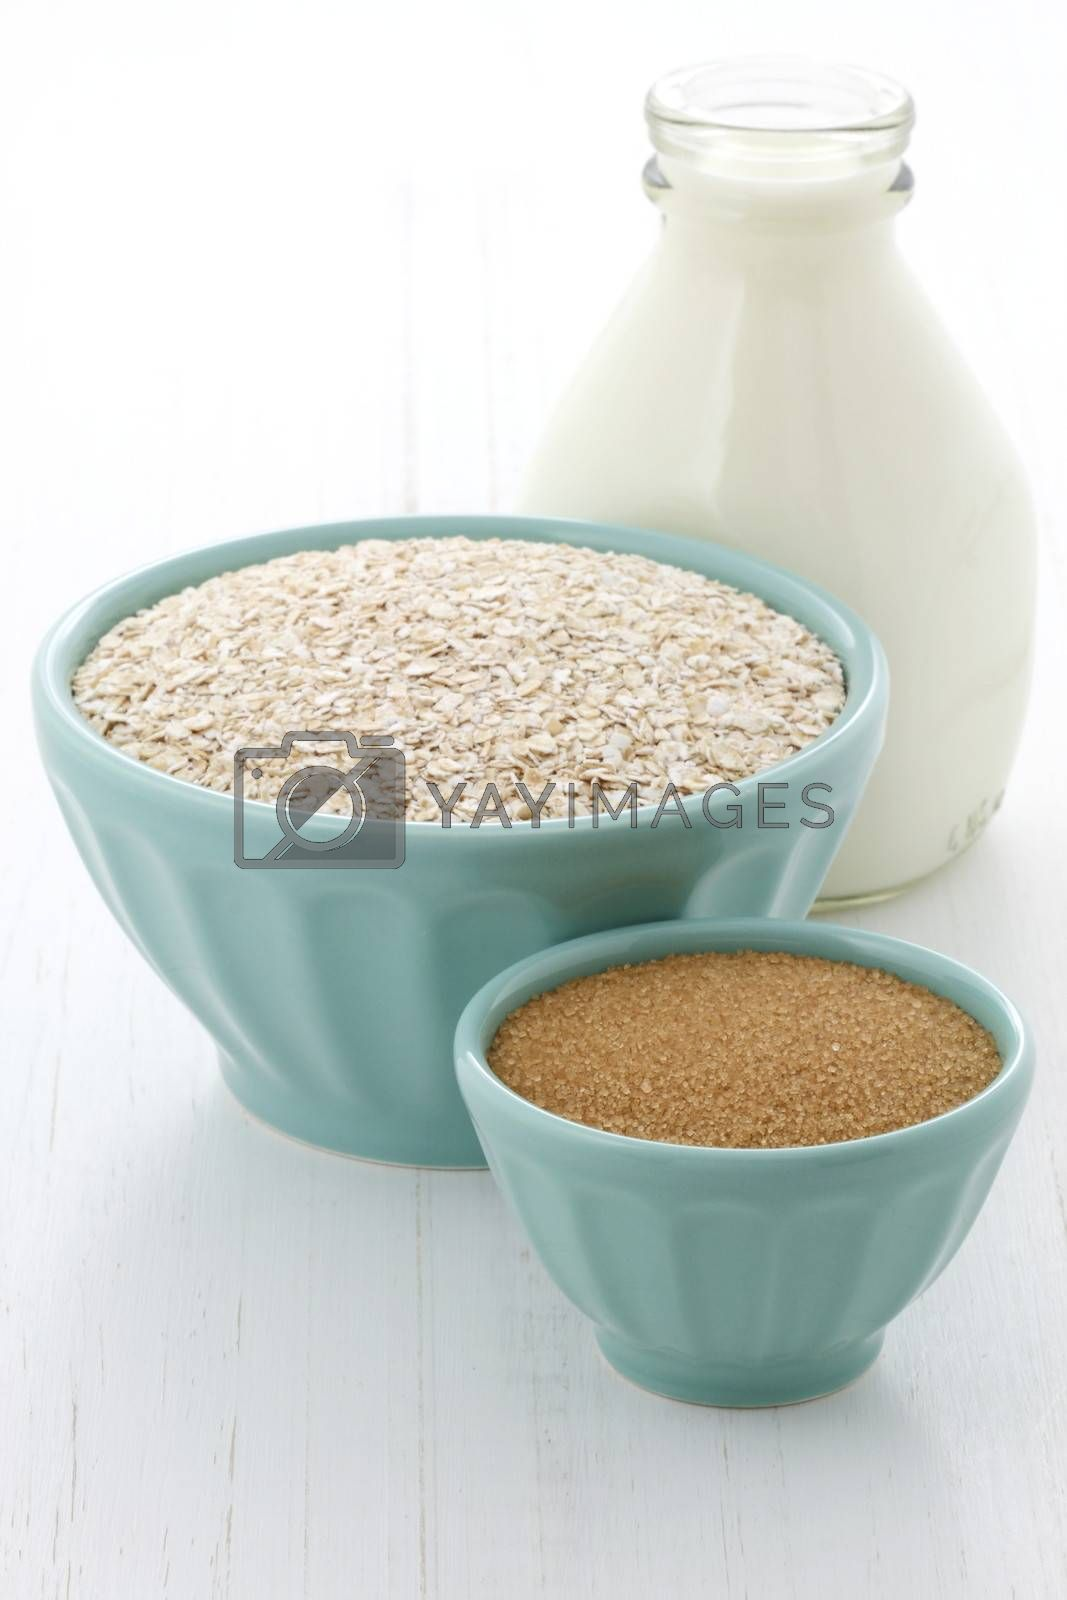 Delicious and nutritious oatmeal ingredients , the perfect healthy way to start your day.